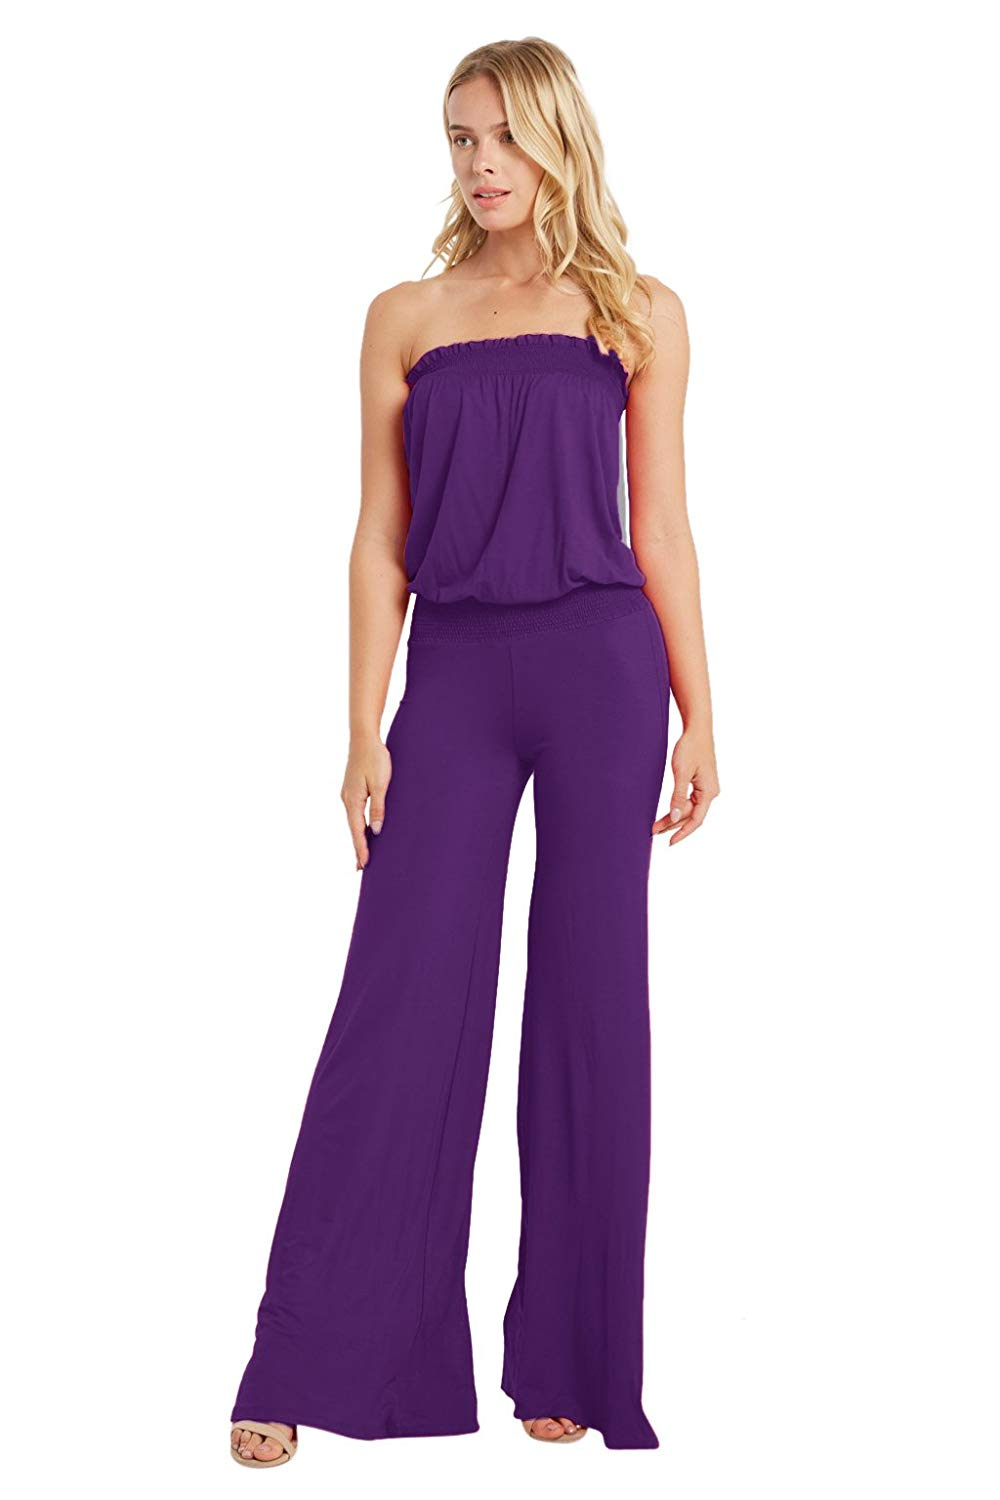 c211a7748f40 Get Quotations · Poshsquare Women s Smocked Tube Strapless Jersey Wide Leg  Pants Plus Jumpsuit Playsuit USA